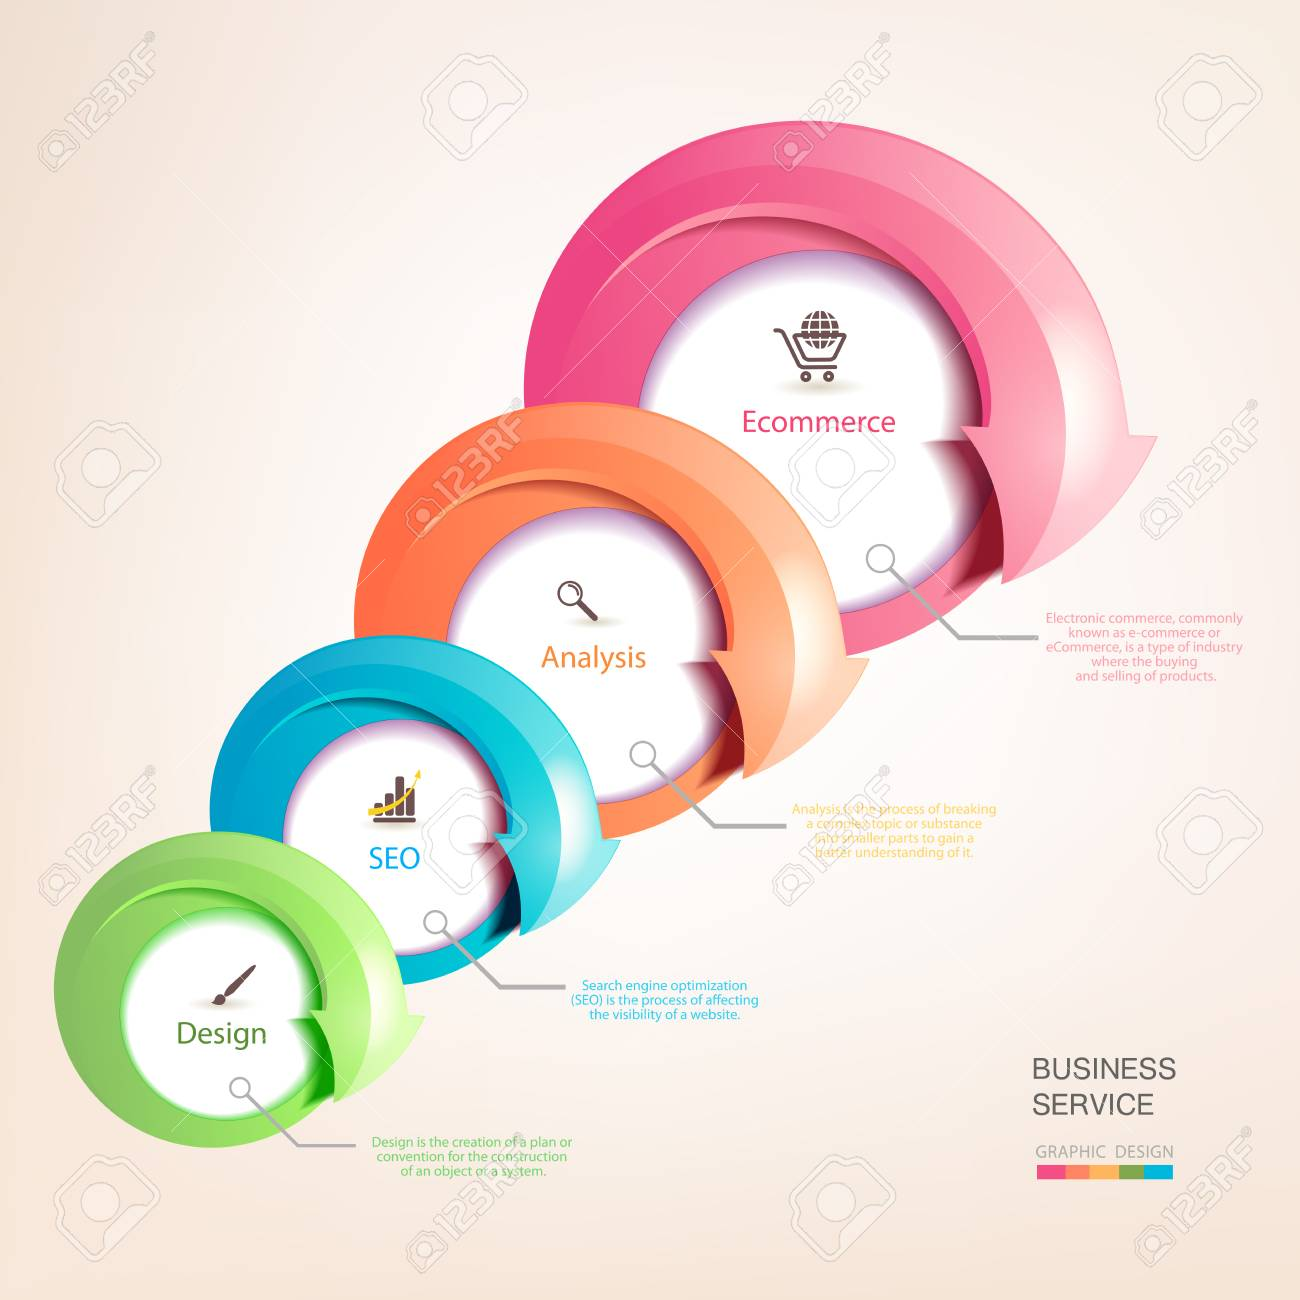 Infographics With Arrows Pointing To The Companys Services Business Development